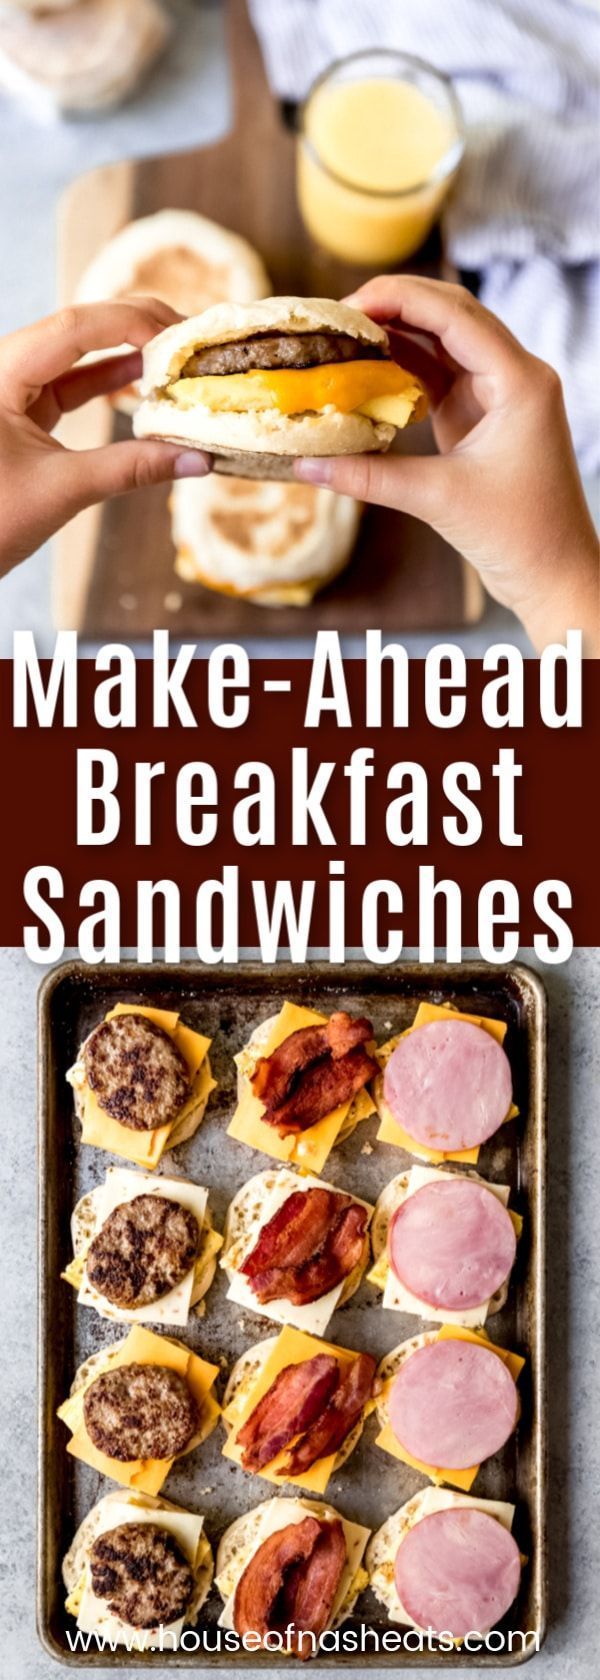 These Make-Ahead Breakfast Sandwiches are perfect for batching and throwing in the freezer for busy